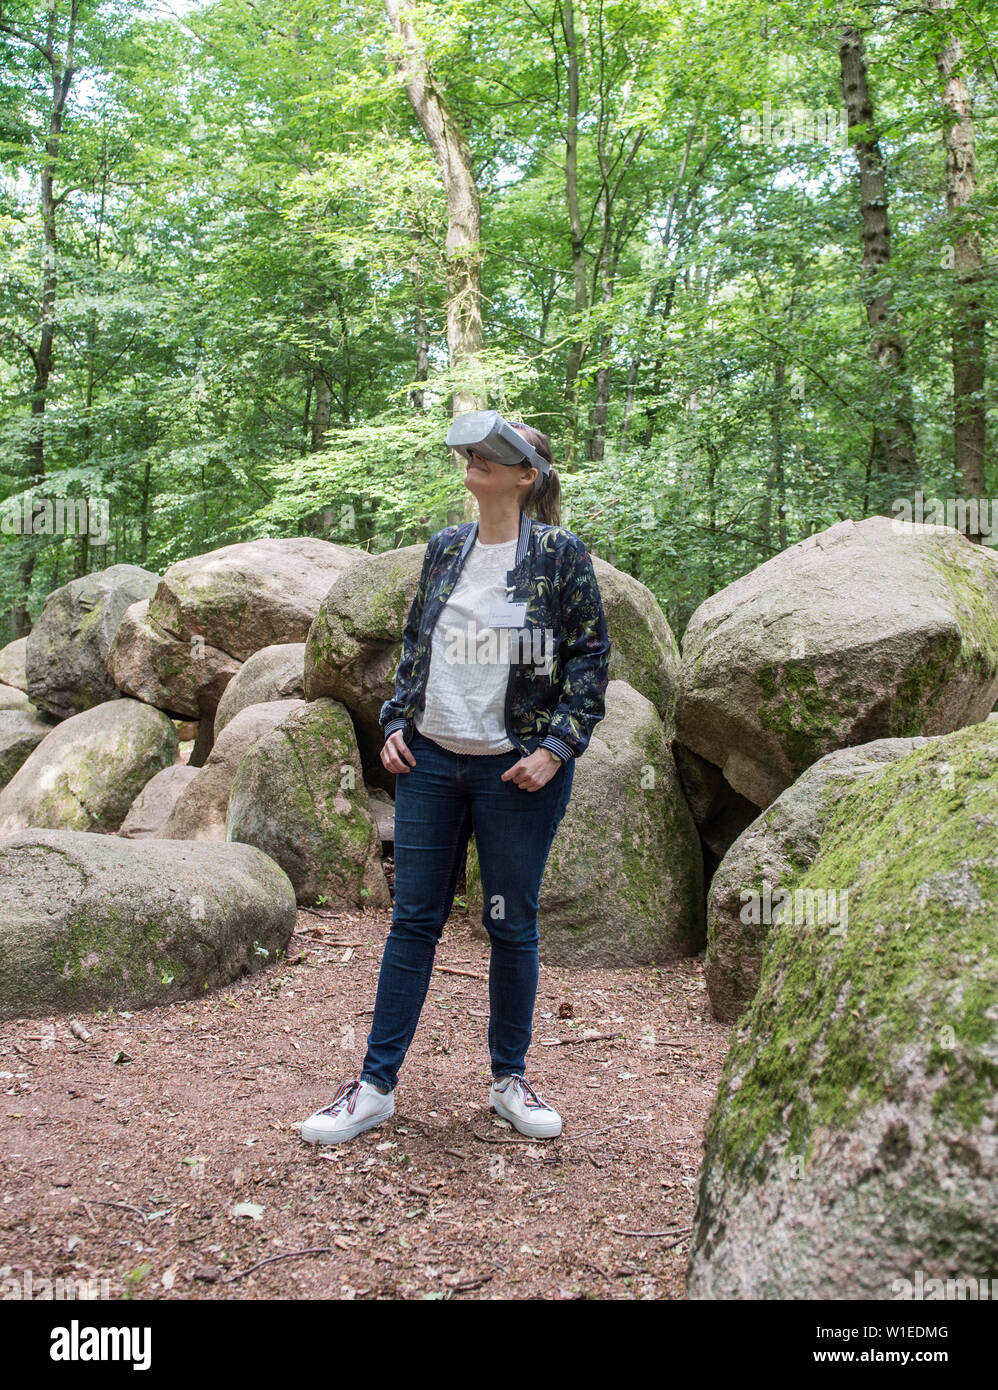 Westerkappeln, Germany. 02nd July, 2019. Kerstin Schierhold, Stone Age expert of the Landschaftsverband Westfalen-Lippe (LWL) tests the animation of the Great Sloopsteene near Westerkappeln in the district of Steinfurt with virtual reality glasses. The stones are the best preserved grave in Westphalia. Visitors can now see how the tomb once looked from the inside and outside with technical help, virtual reality glasses or on their own smartphone. Credit: Caroline Seidel/dpa/Alamy Live News Stock Photo